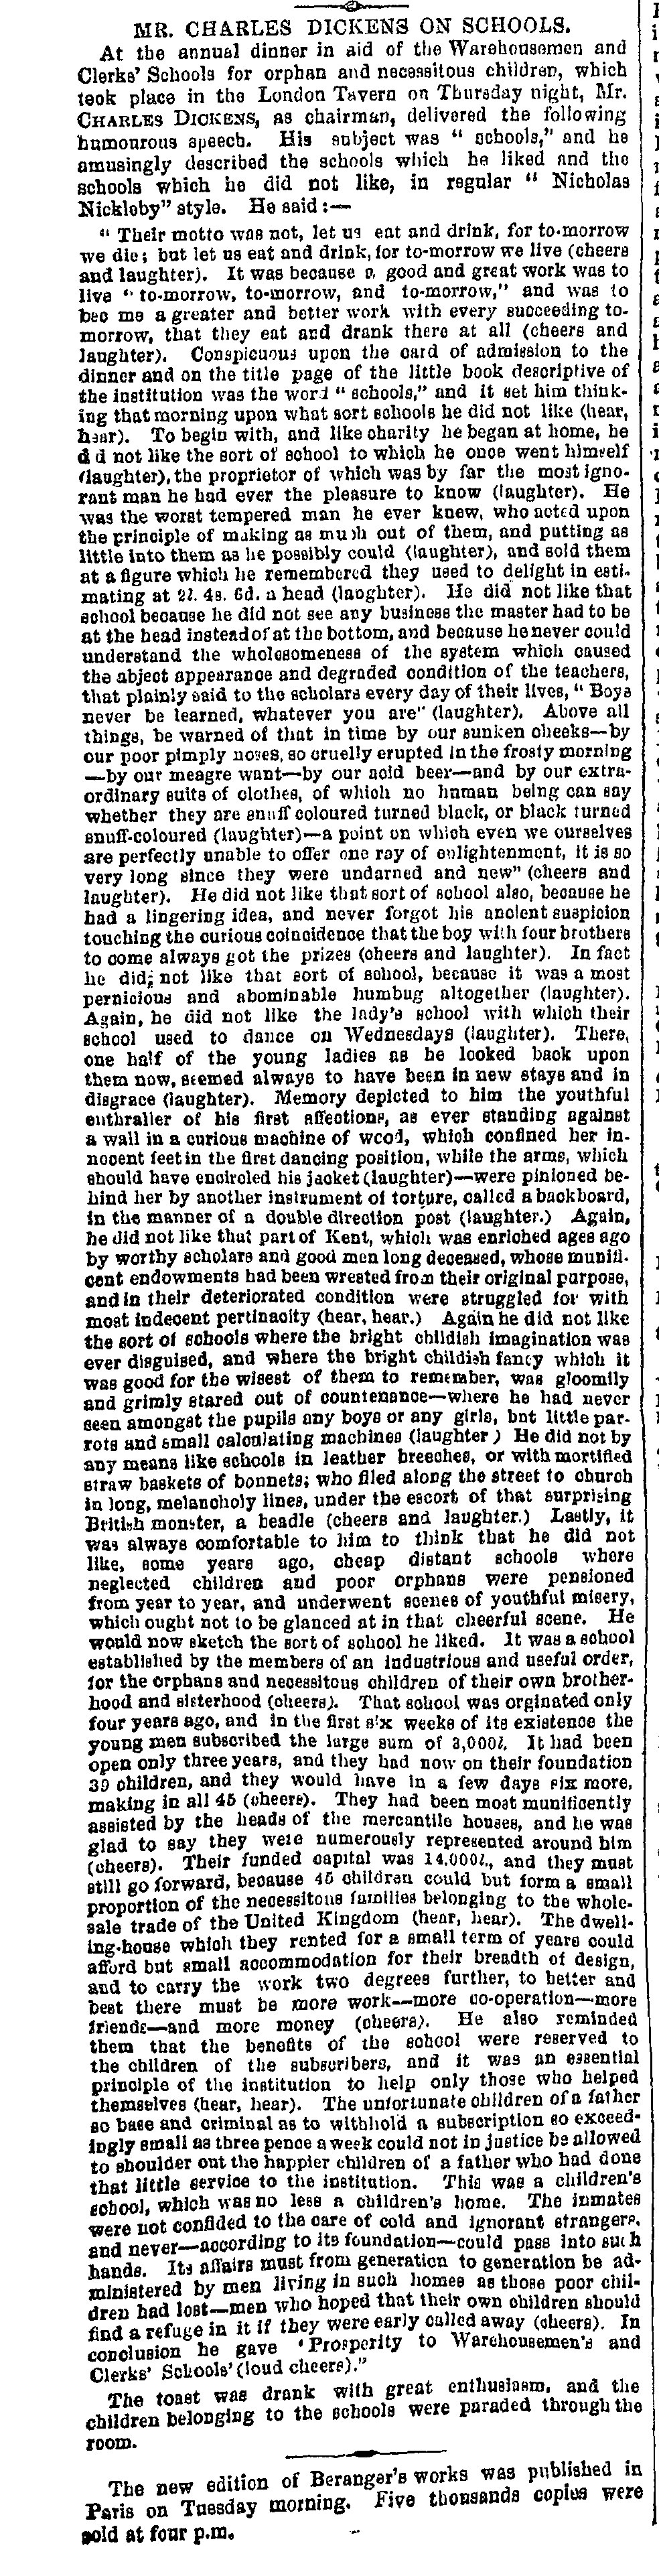 Mr Charles Dickens on Schools' from the Freeman's Journal and Daily Commerical Advertiser [page: 4]